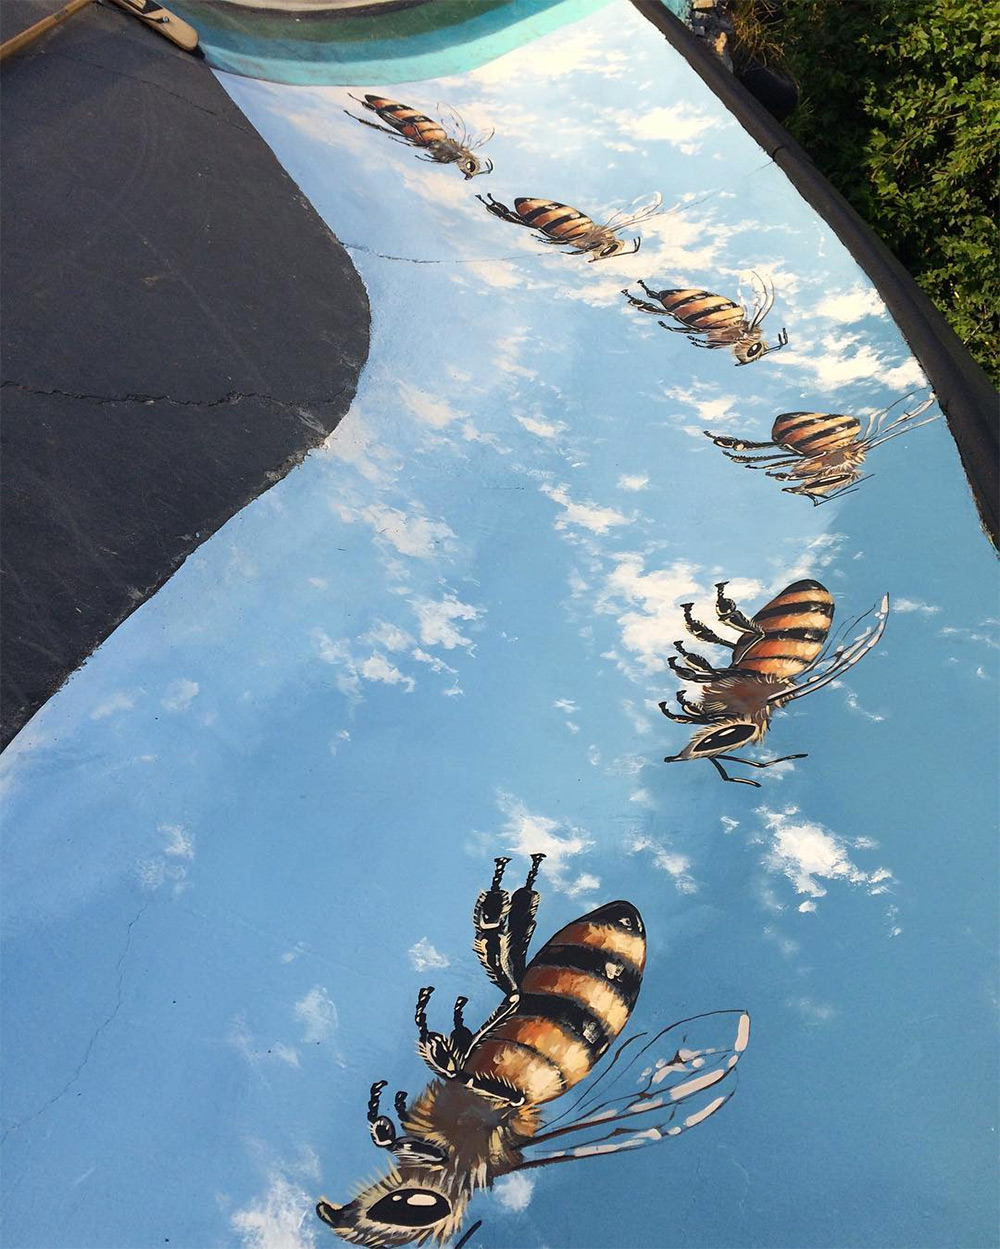 progetto-street-art-api-mondo-the-good-of-the-hive-matthew-willey-07